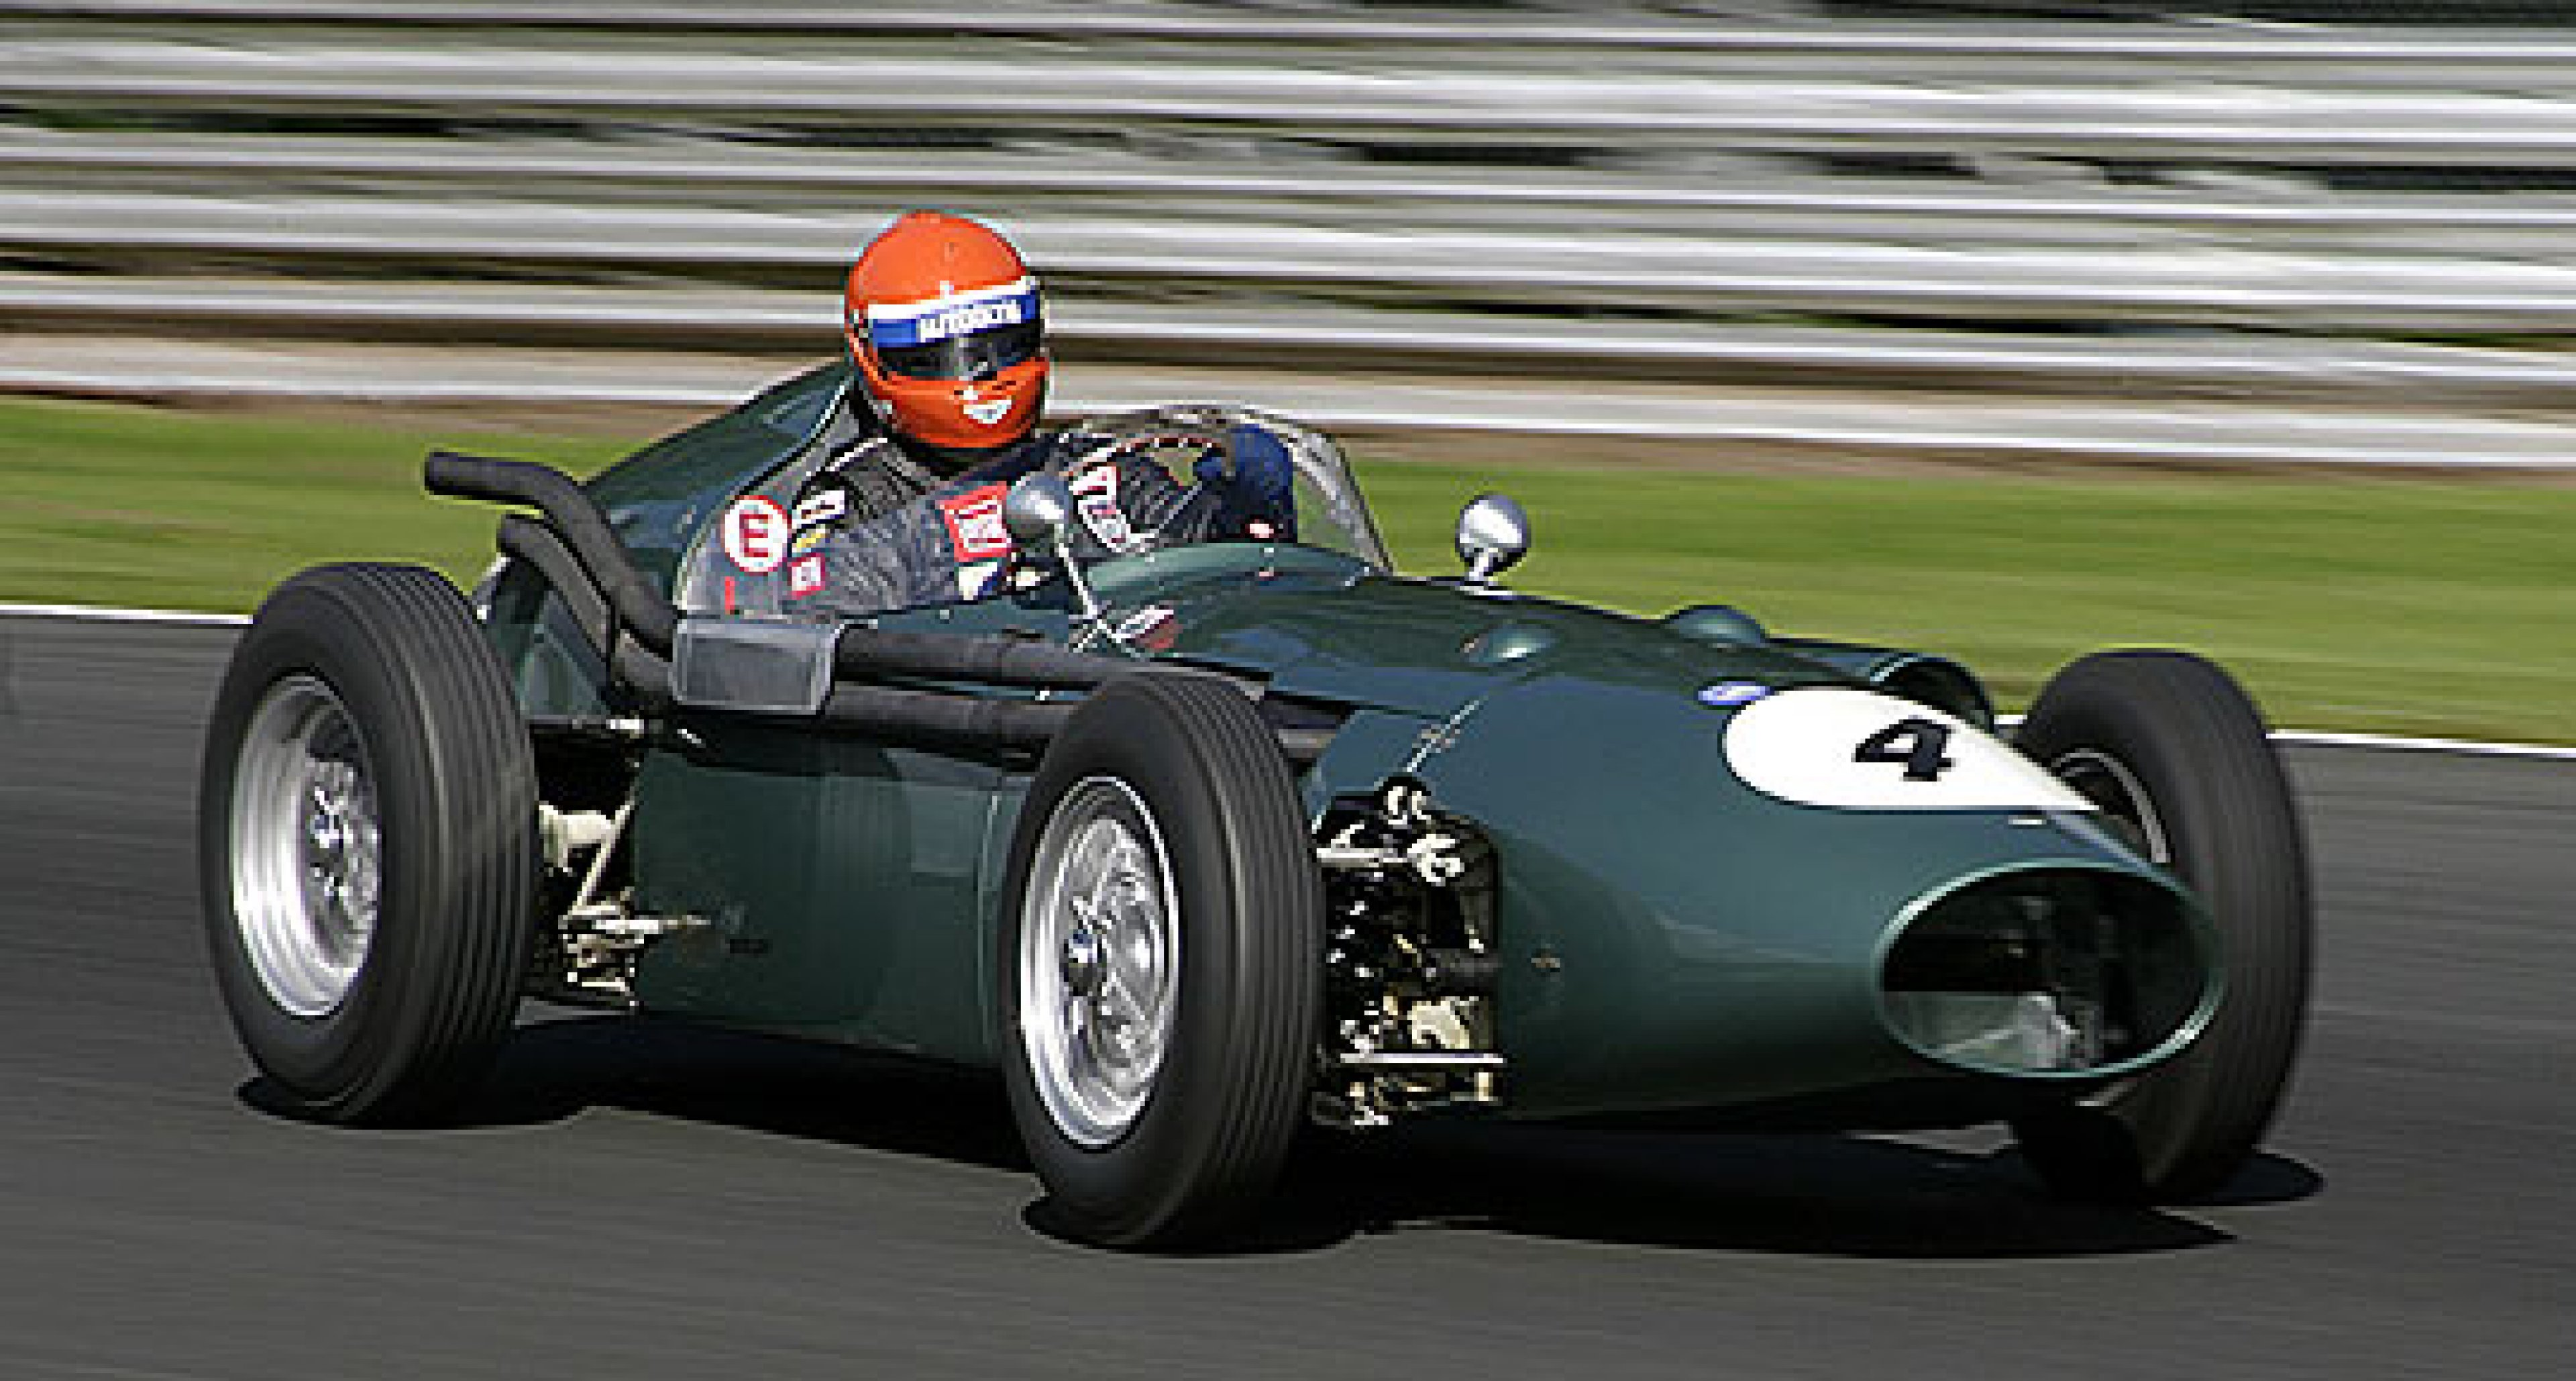 The Silverstone Classic 2006